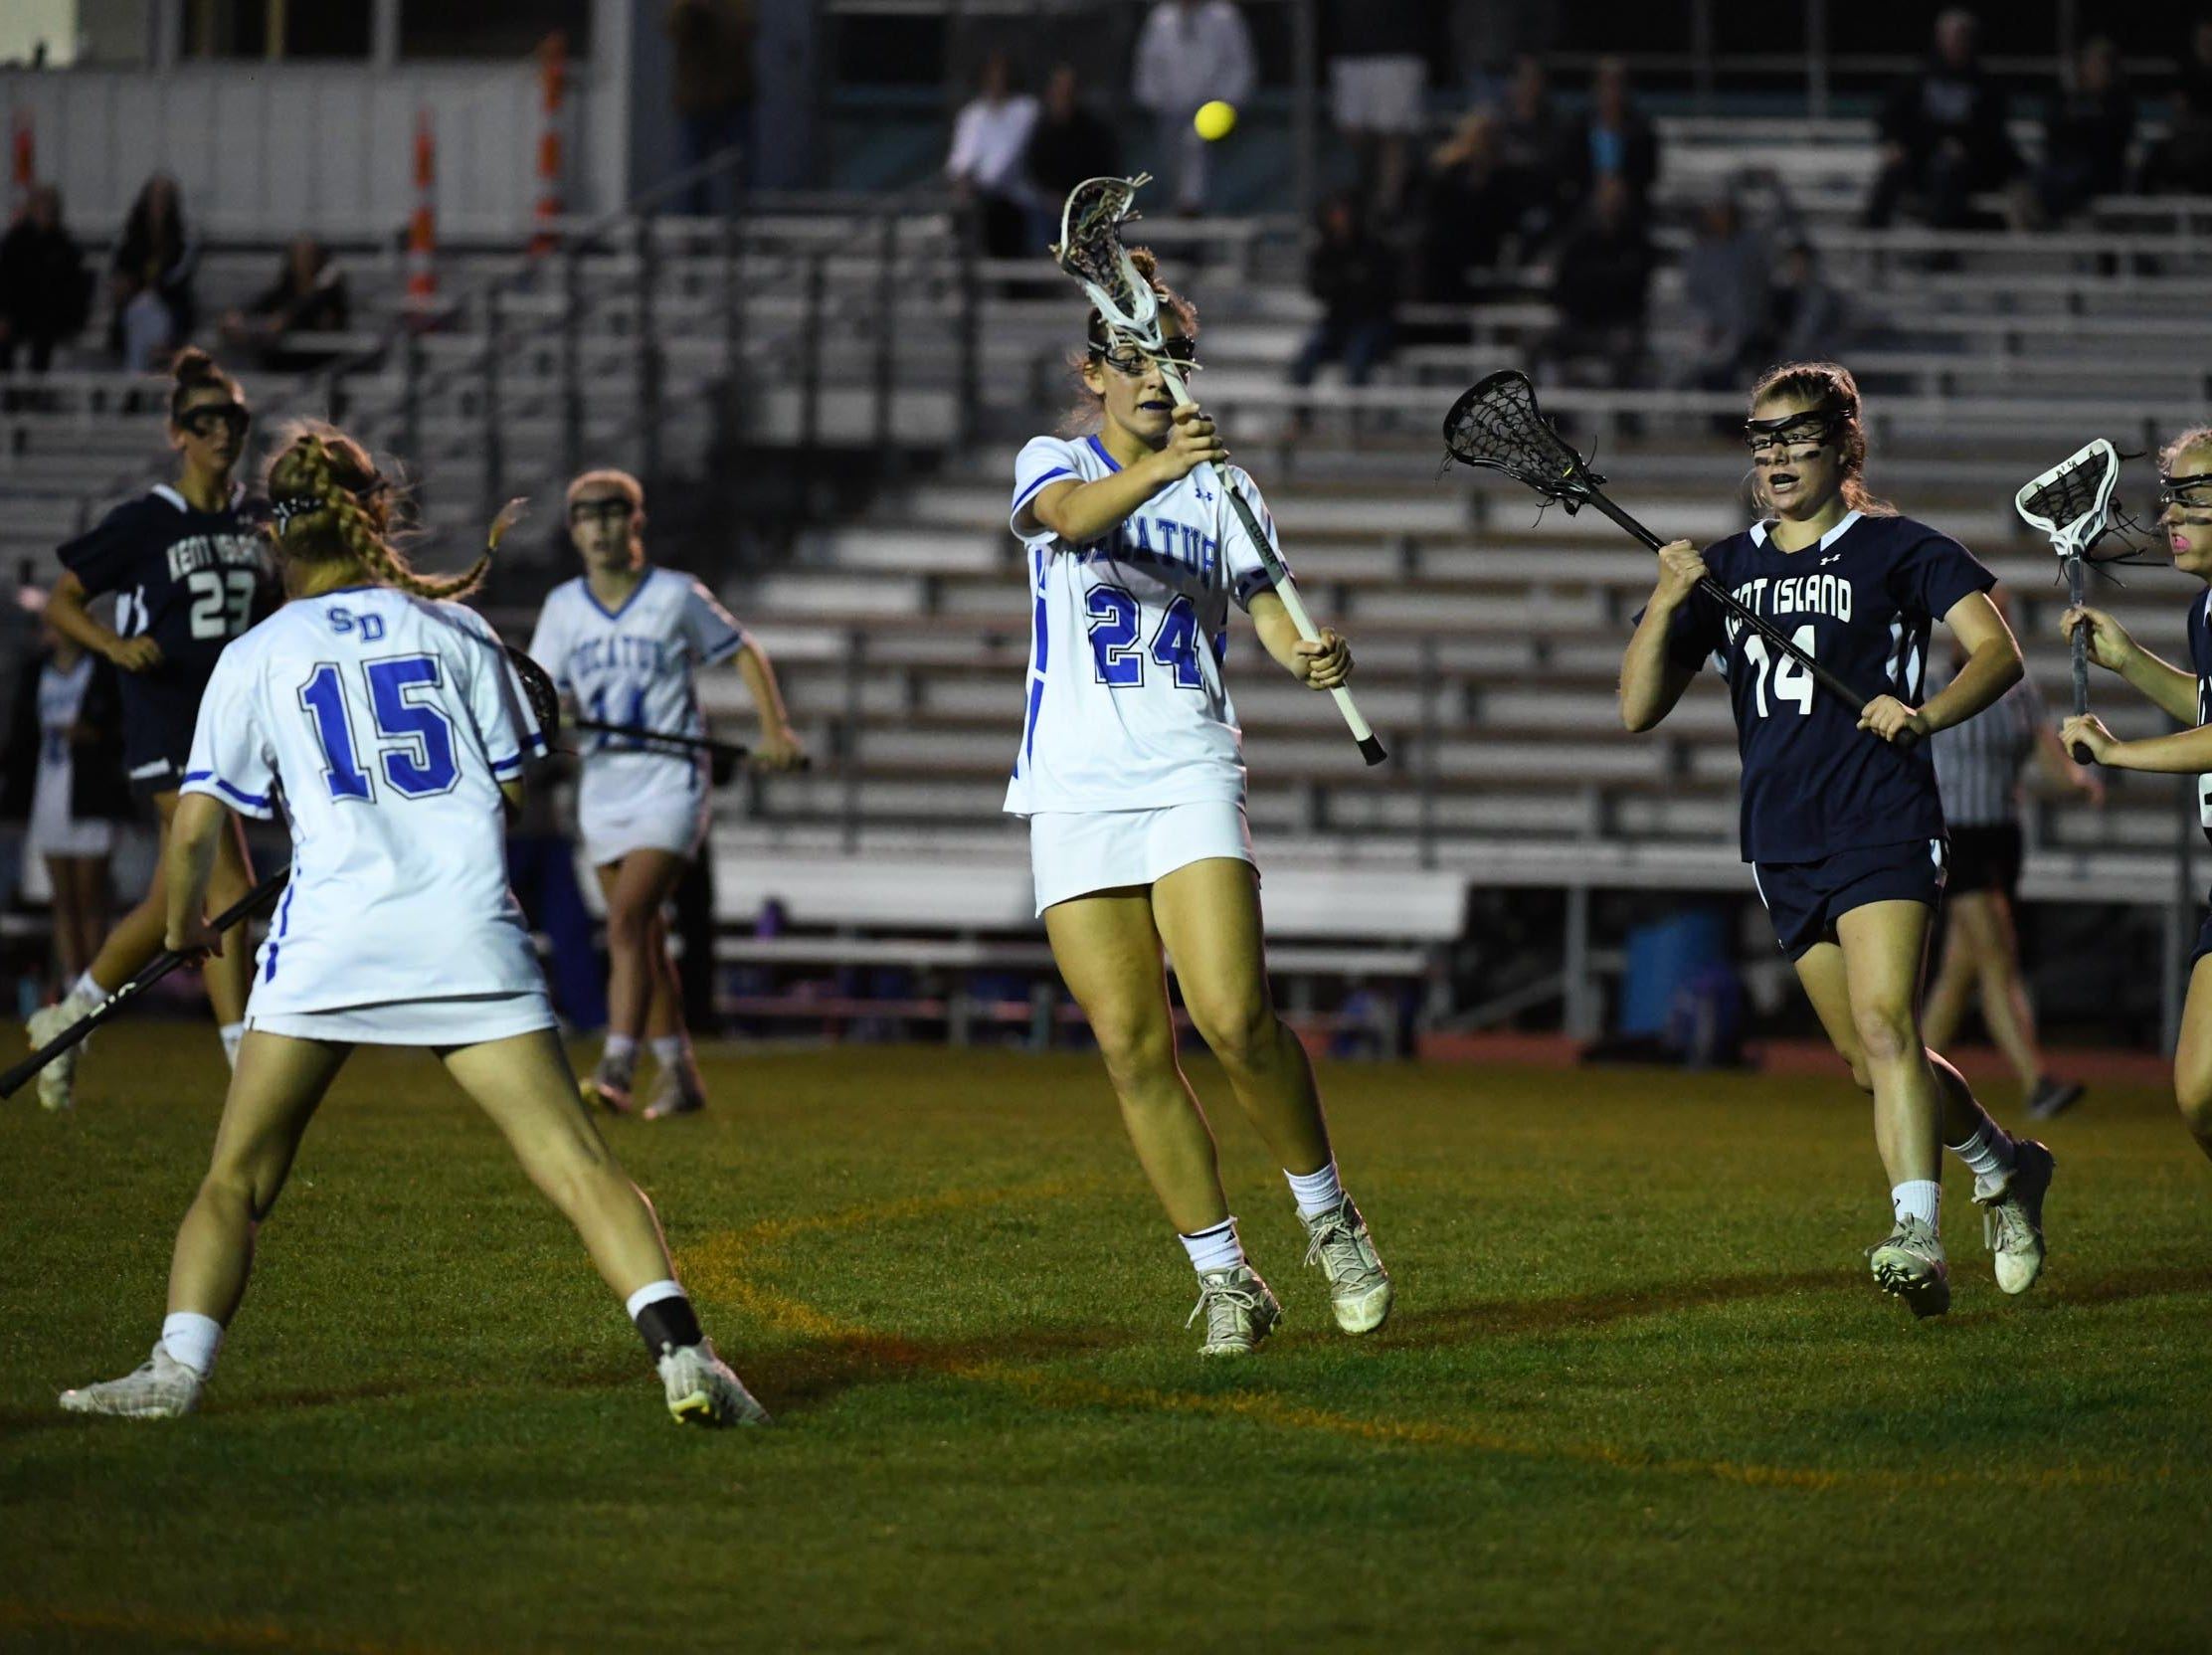 Stephen Decatur's Alyssa Romano with the pass against Kent Island during the Bayside Championship on Monday, May 6, 2019 at Wicomico County Stadium in Salisbury, Md.